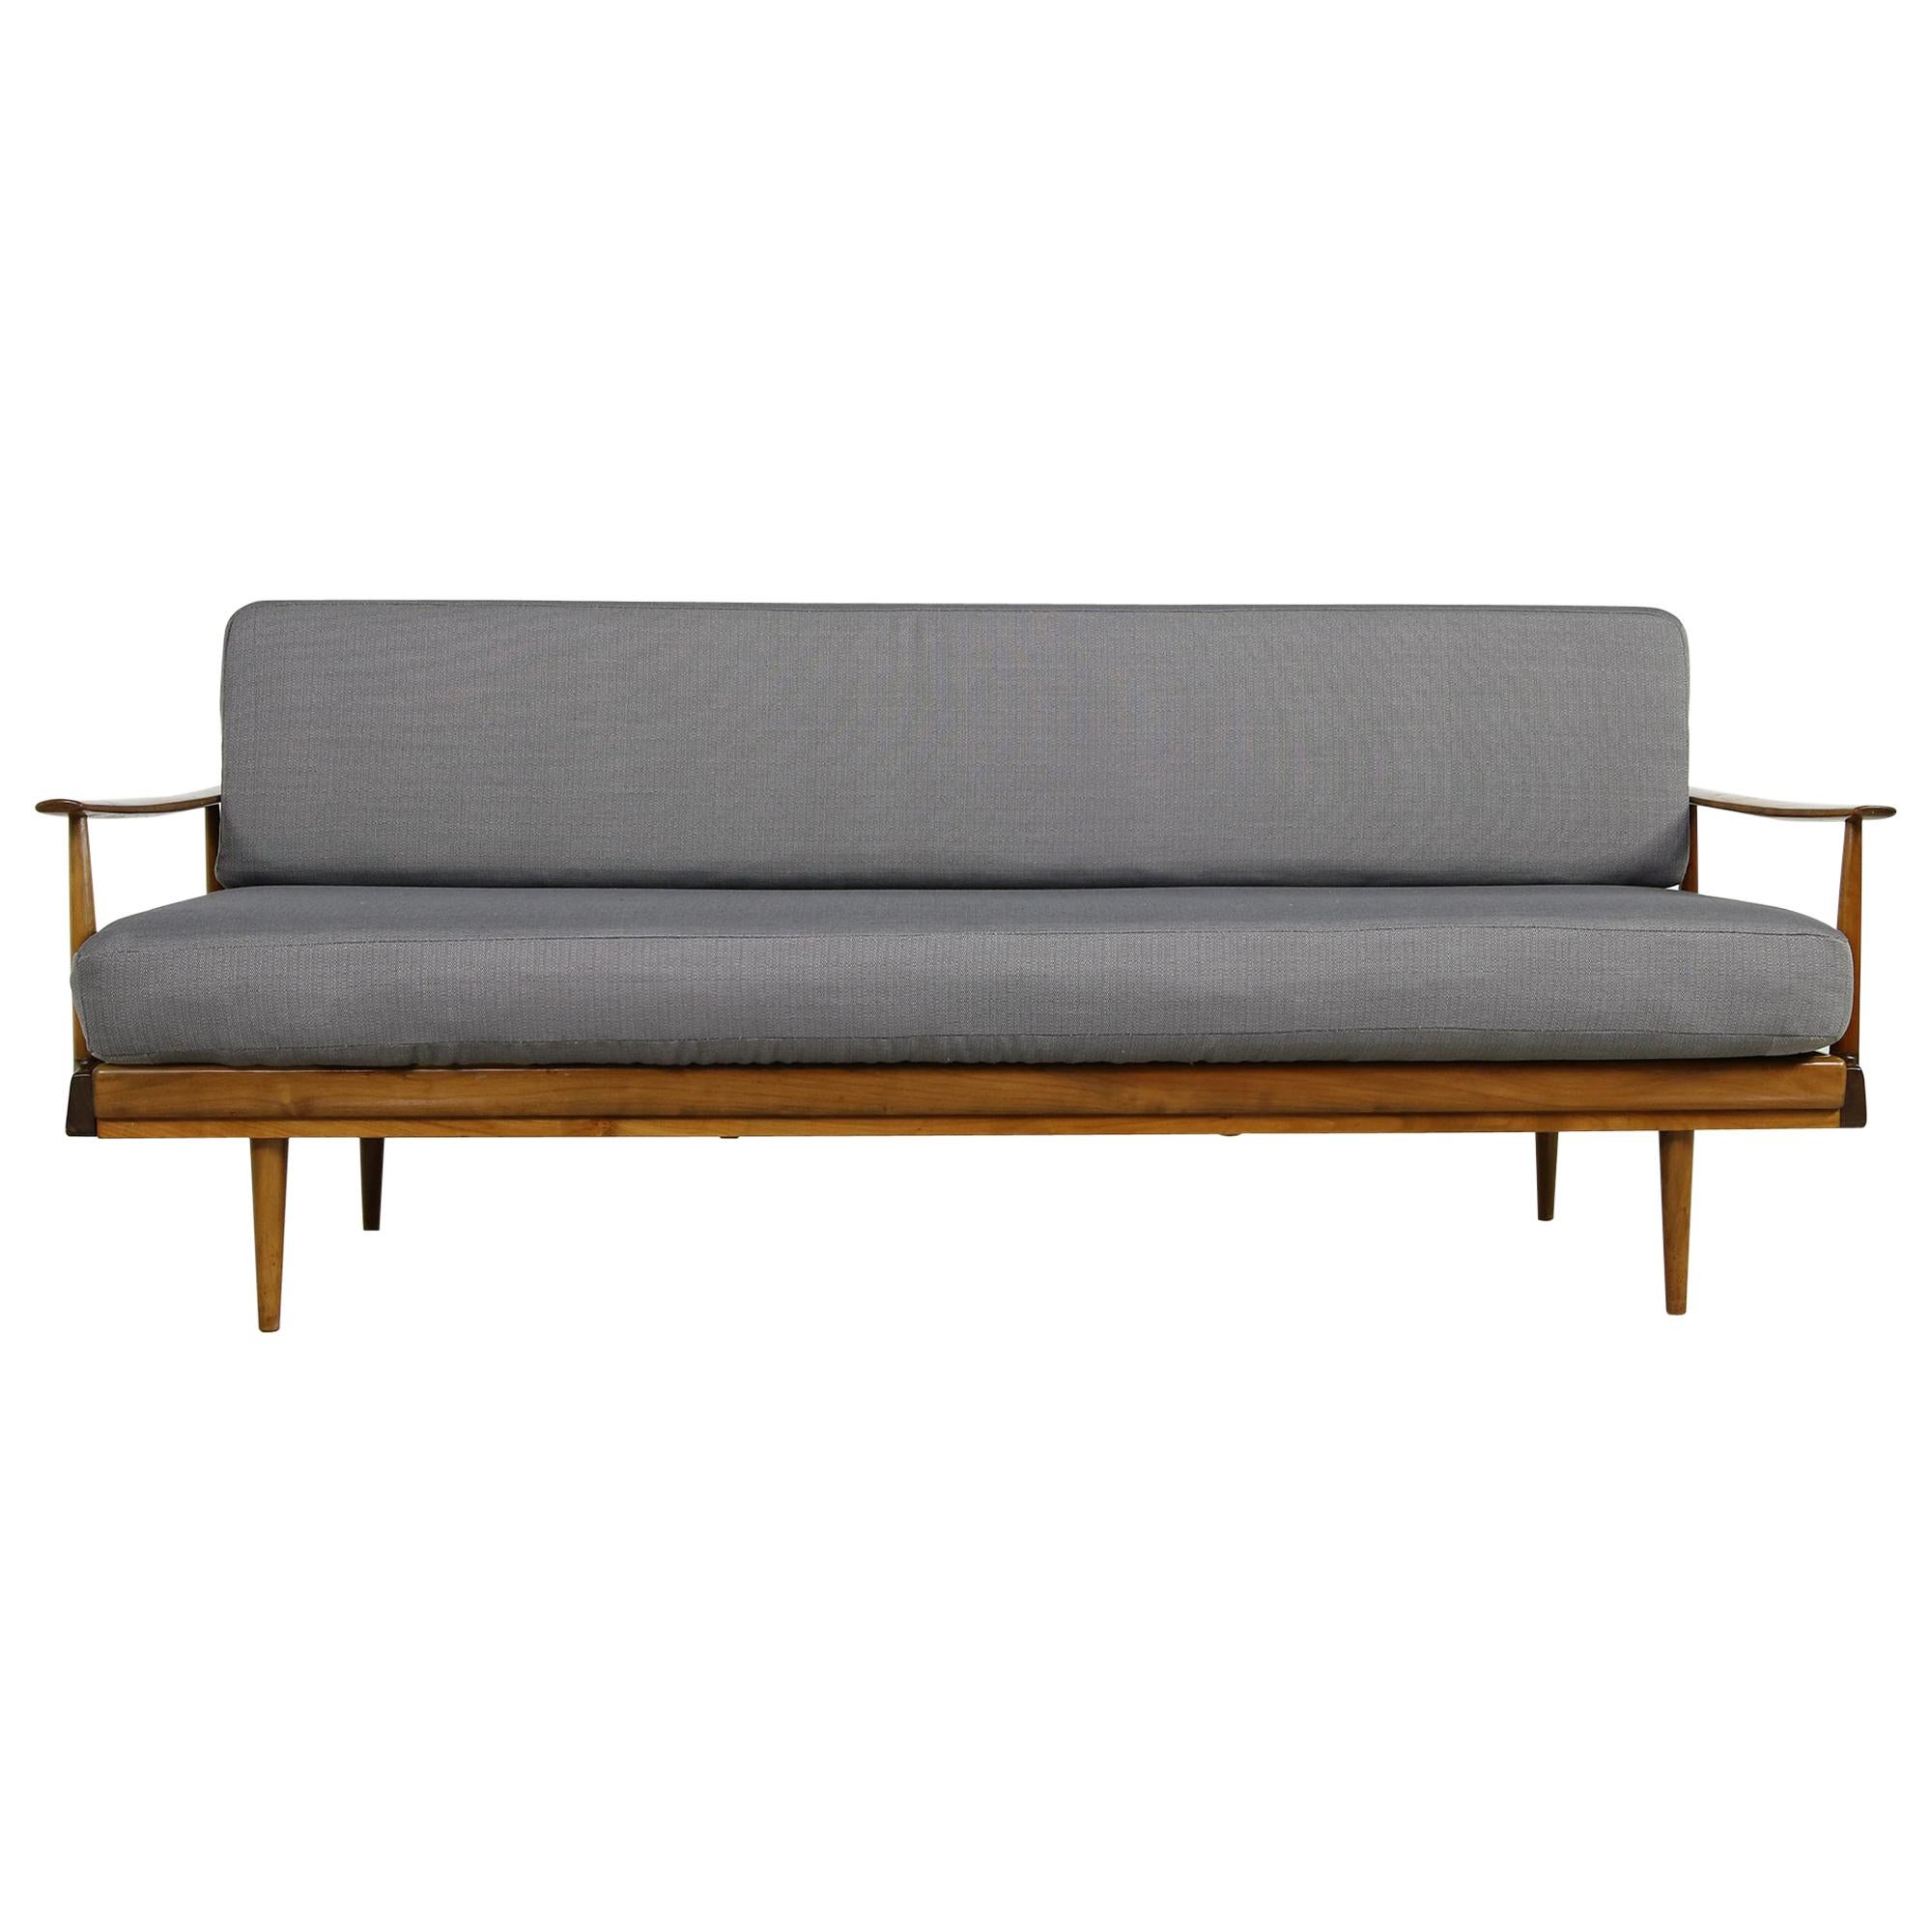 Genial Mid Century Modern Sofa, Knoll, Germany 1960s Beechwood, Daybed At 1stdibs